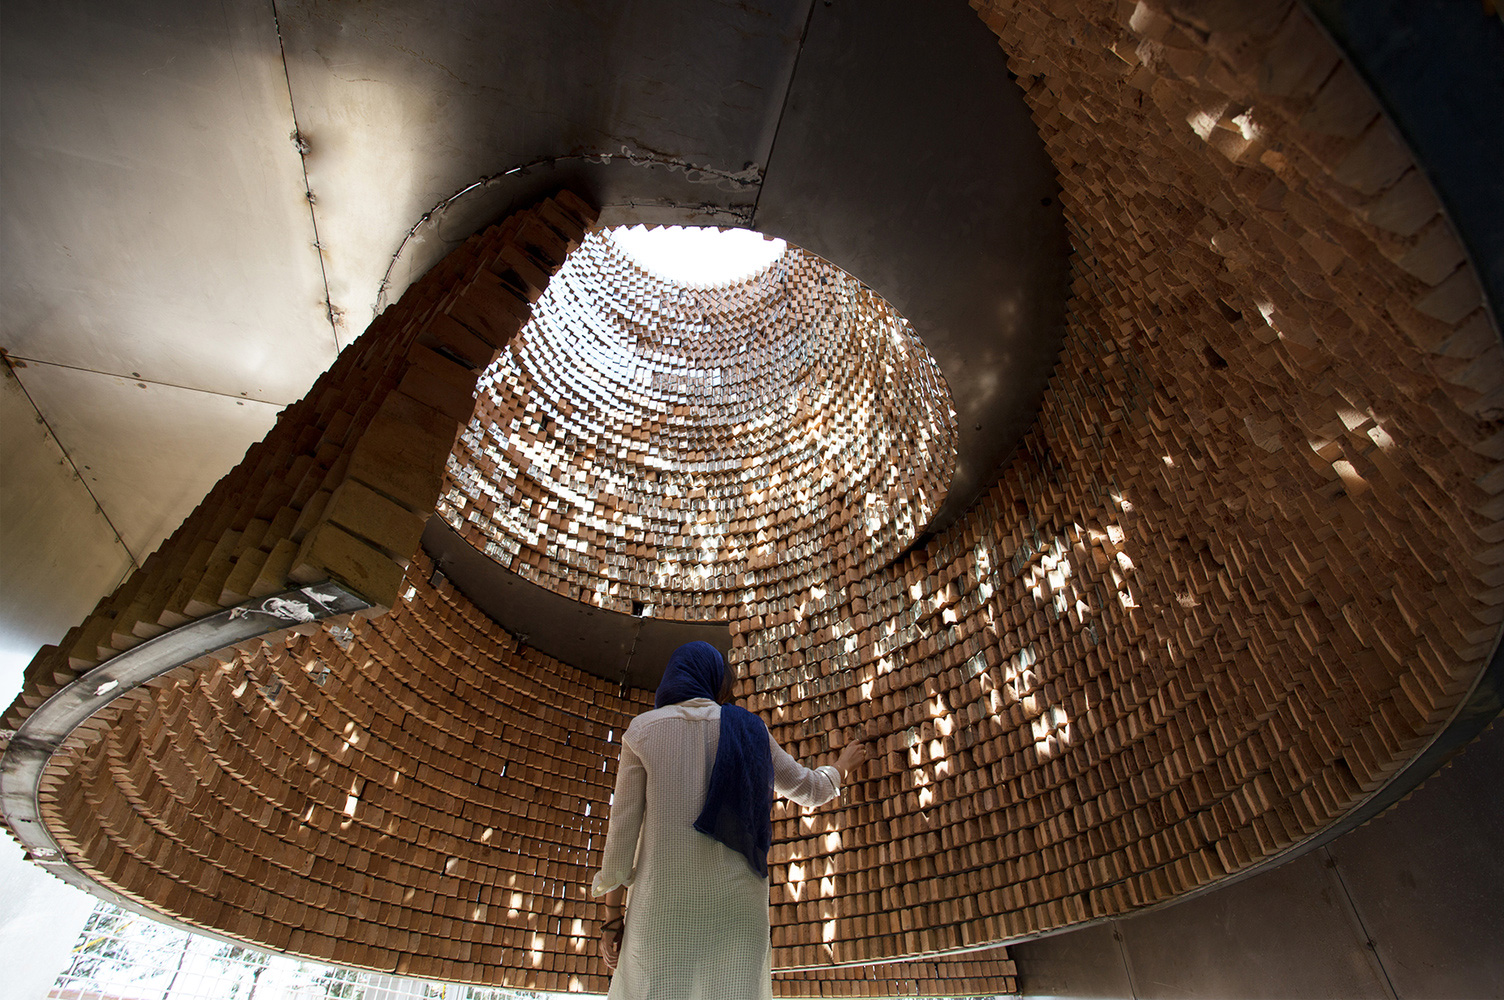 A design by Ashari Architects for an architectural installation in Iran – The Pause | Human within the Architect | Prem Chandavarkar | STIR